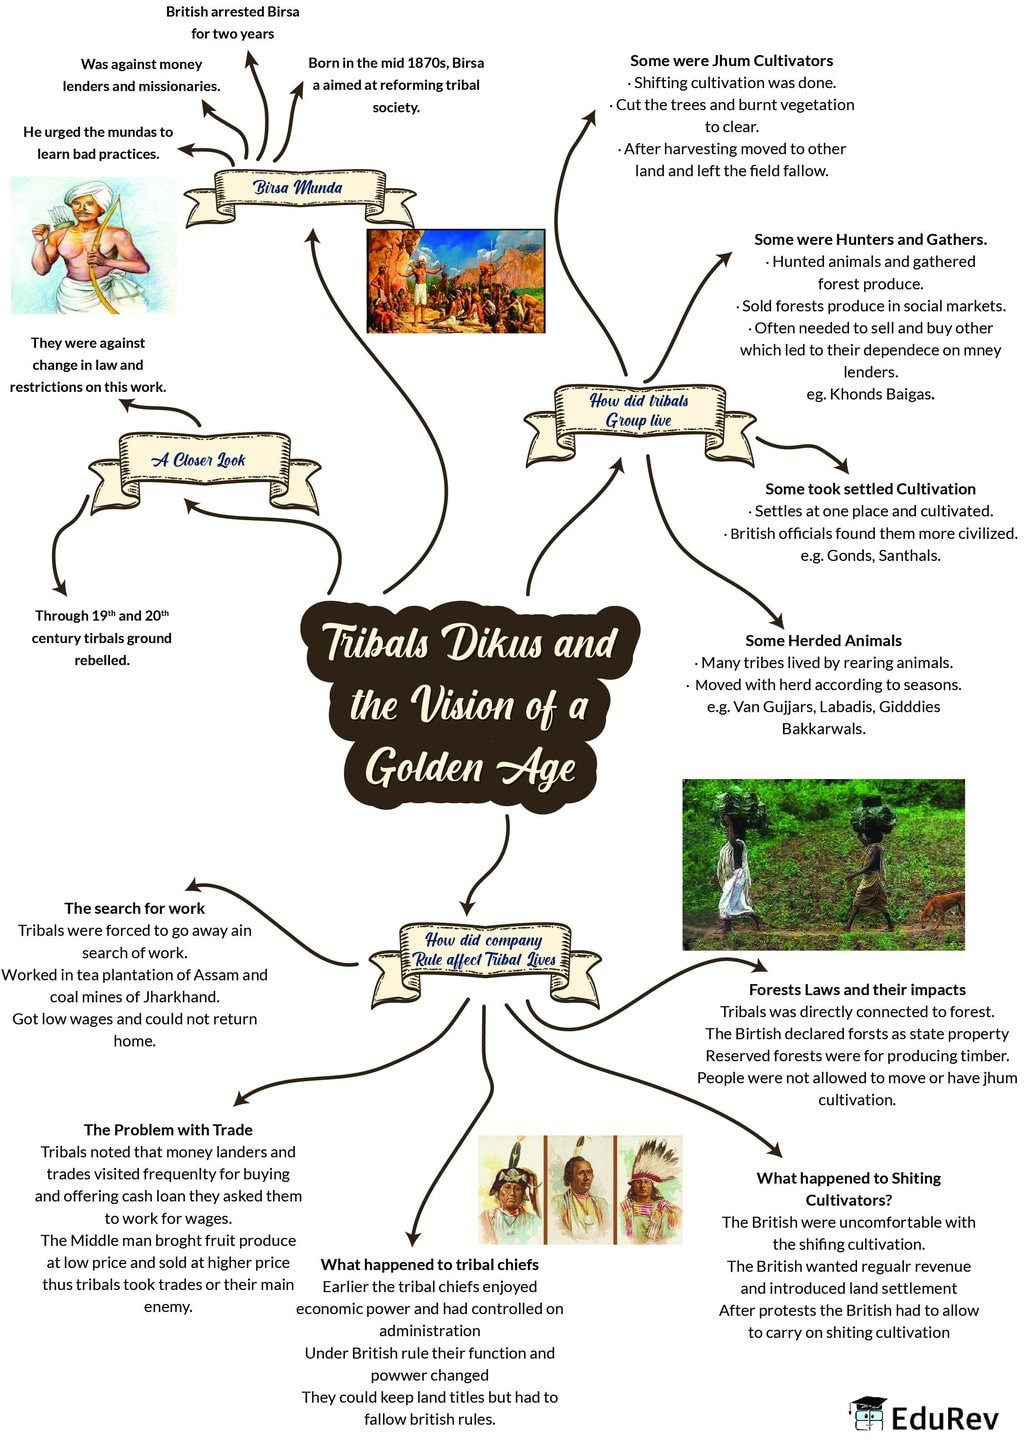 Mindmap: Tribals, Dikus and the Vision of a Golden Age Notes | EduRev